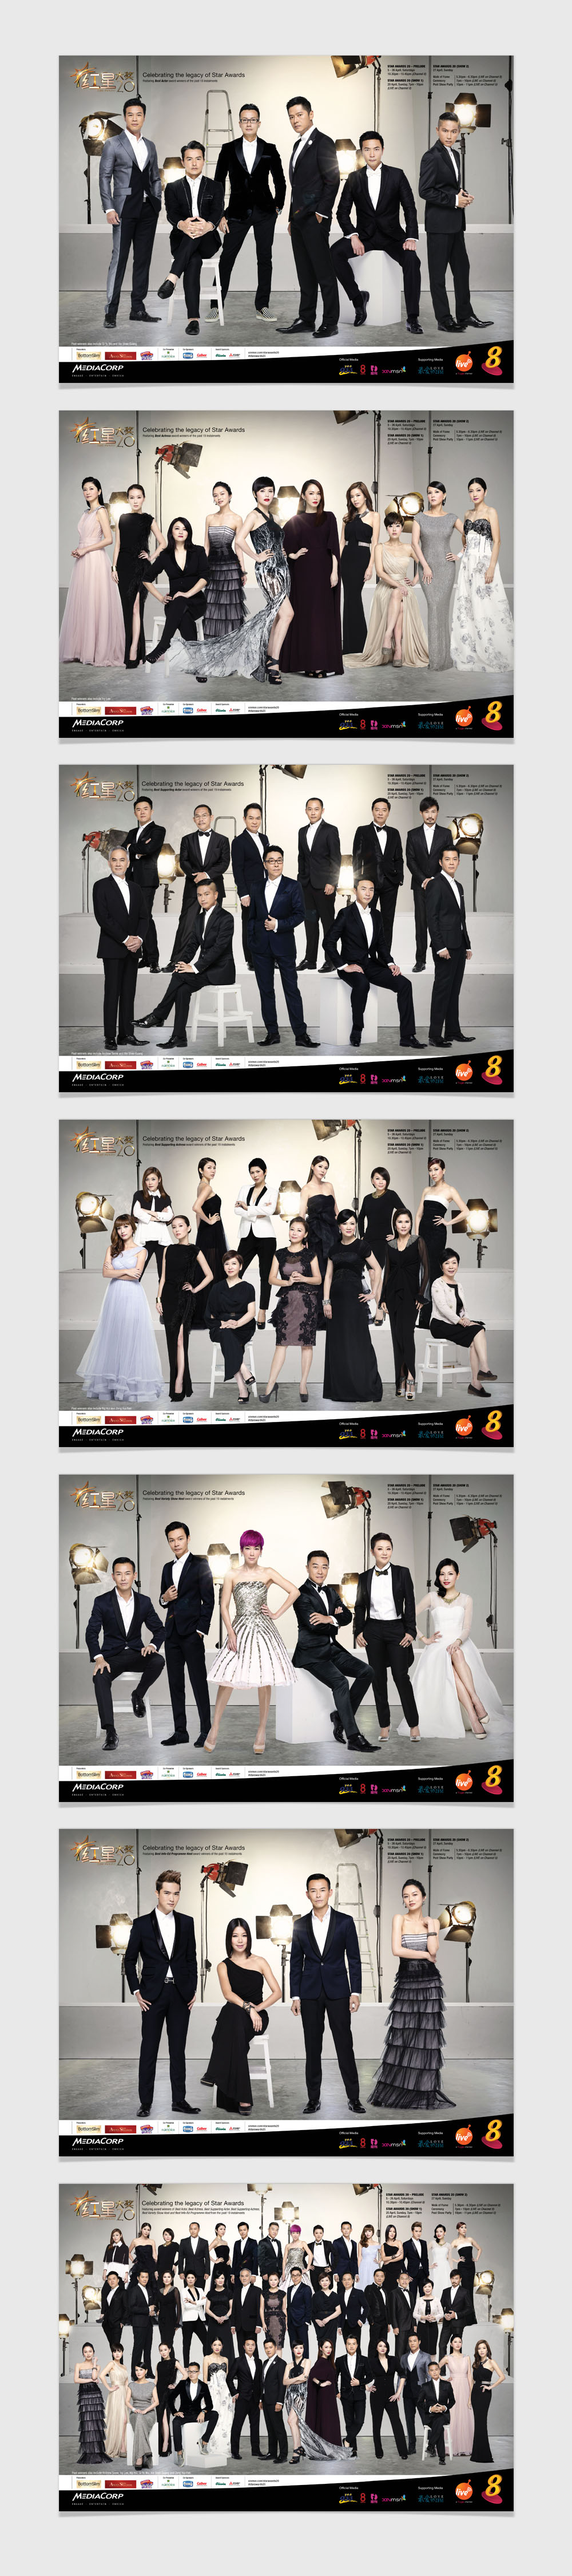 Mediacorp Star Awards 20th Anniversary